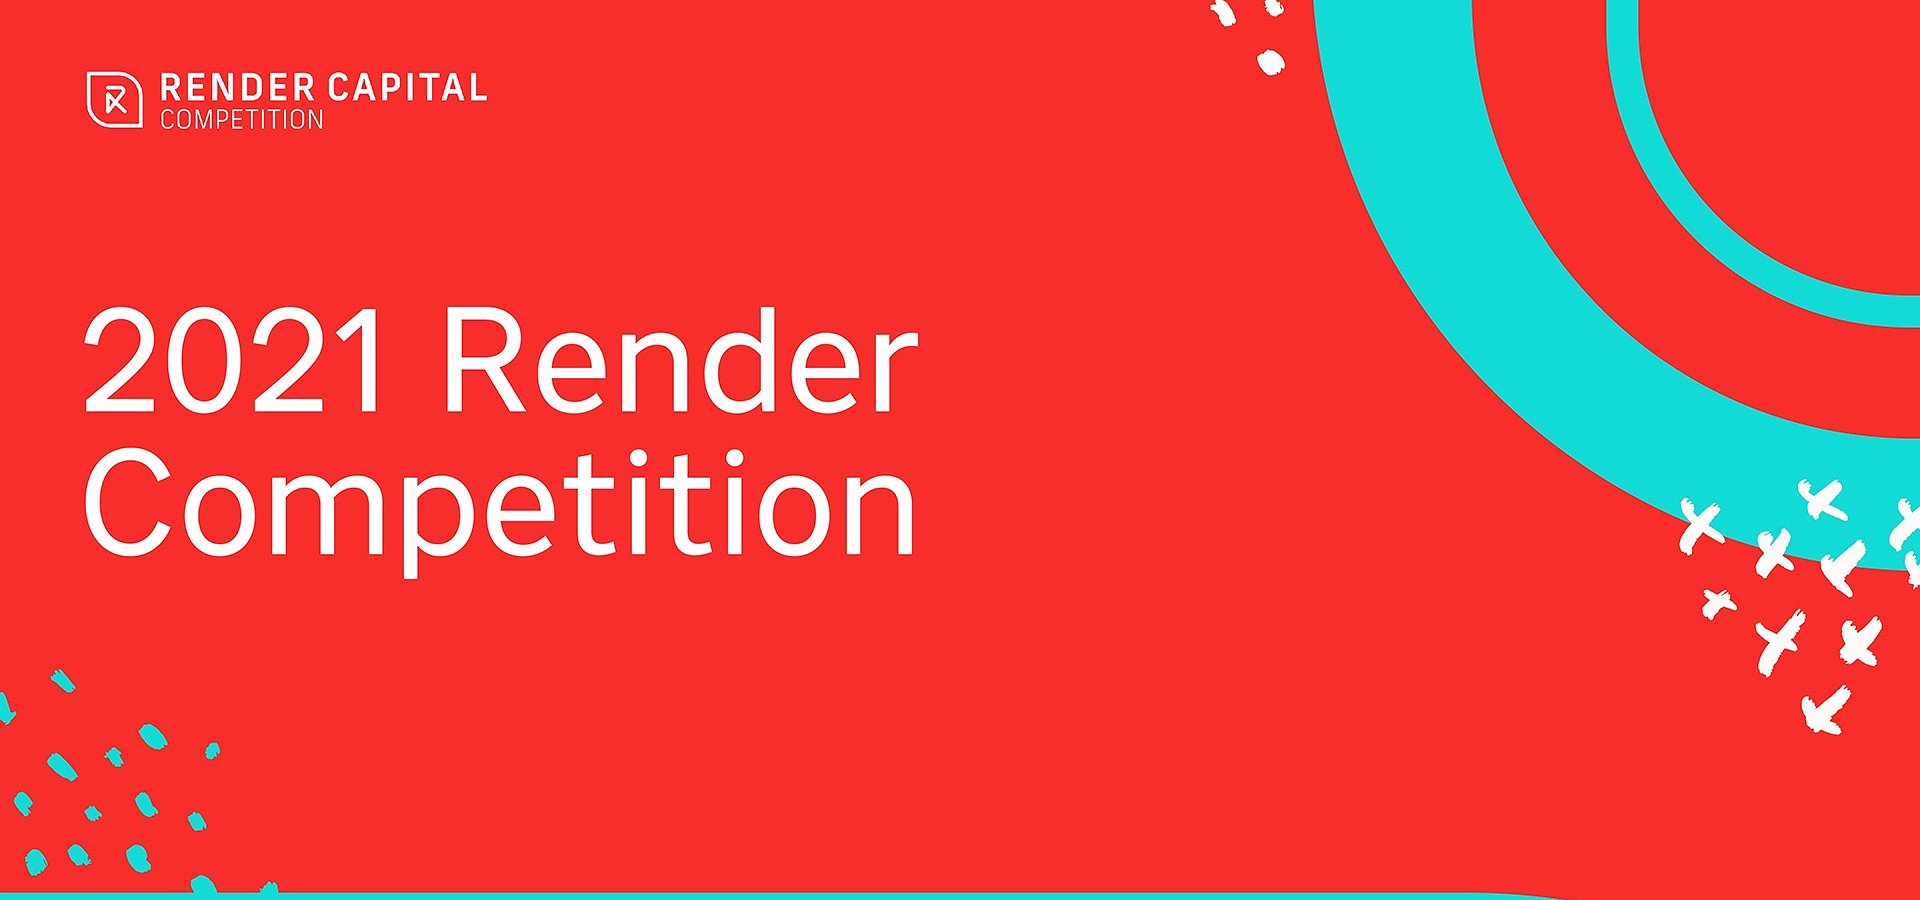 Render Capital Receives More Than 300 Applications for Startup Competition; 8 to Receive Funding to Grow Company in Kentucky